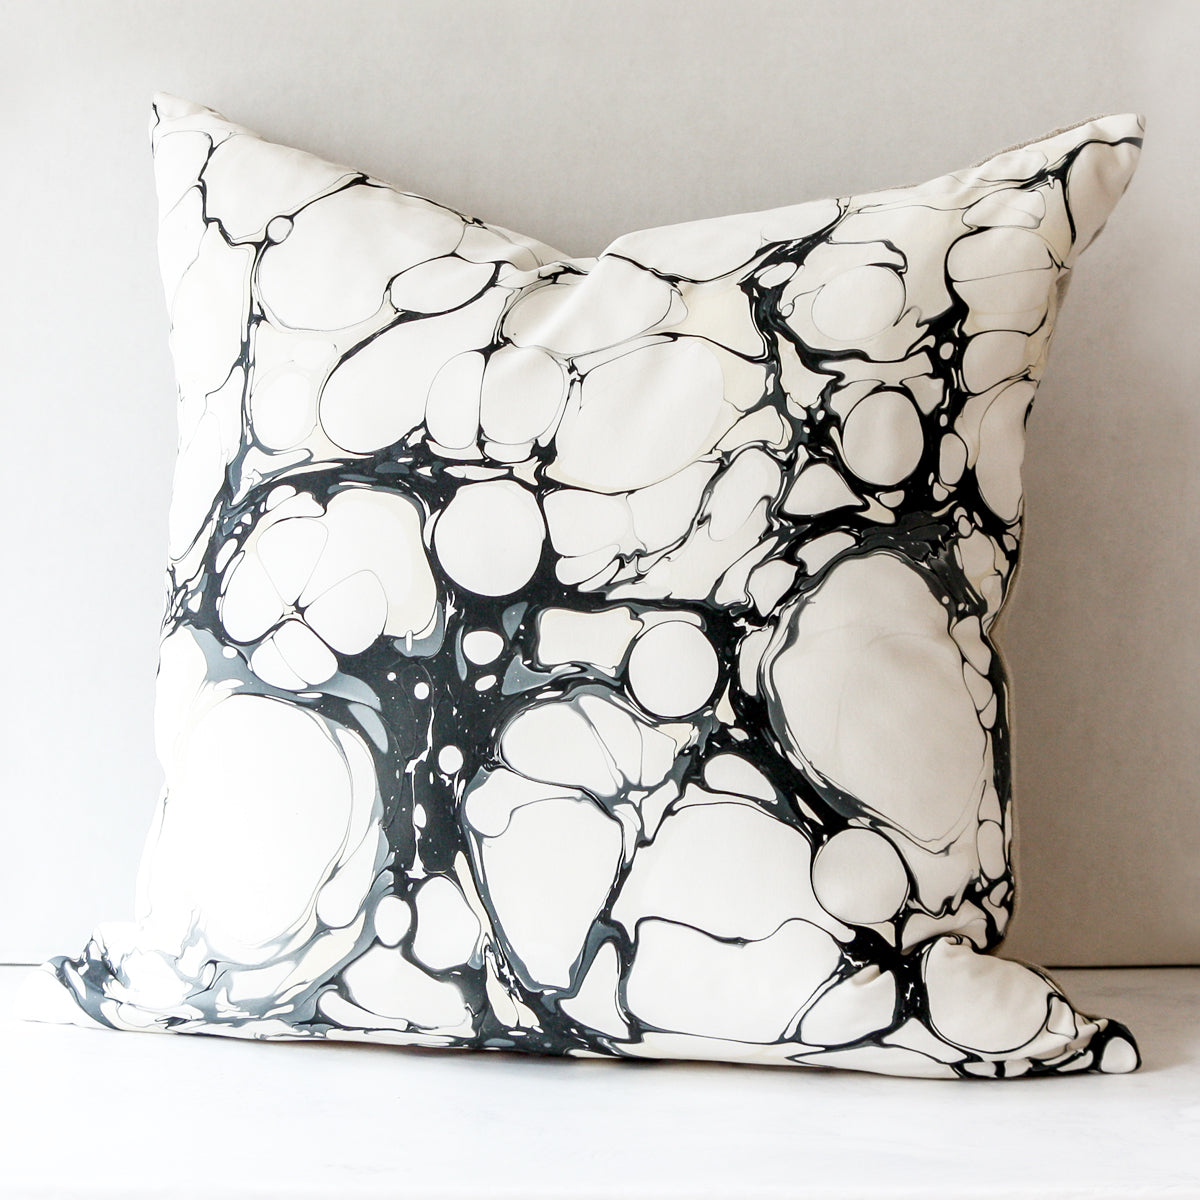 Seastone Bone China Pillow made of silk and Belgian linen in black and white by Rule of Three Studio